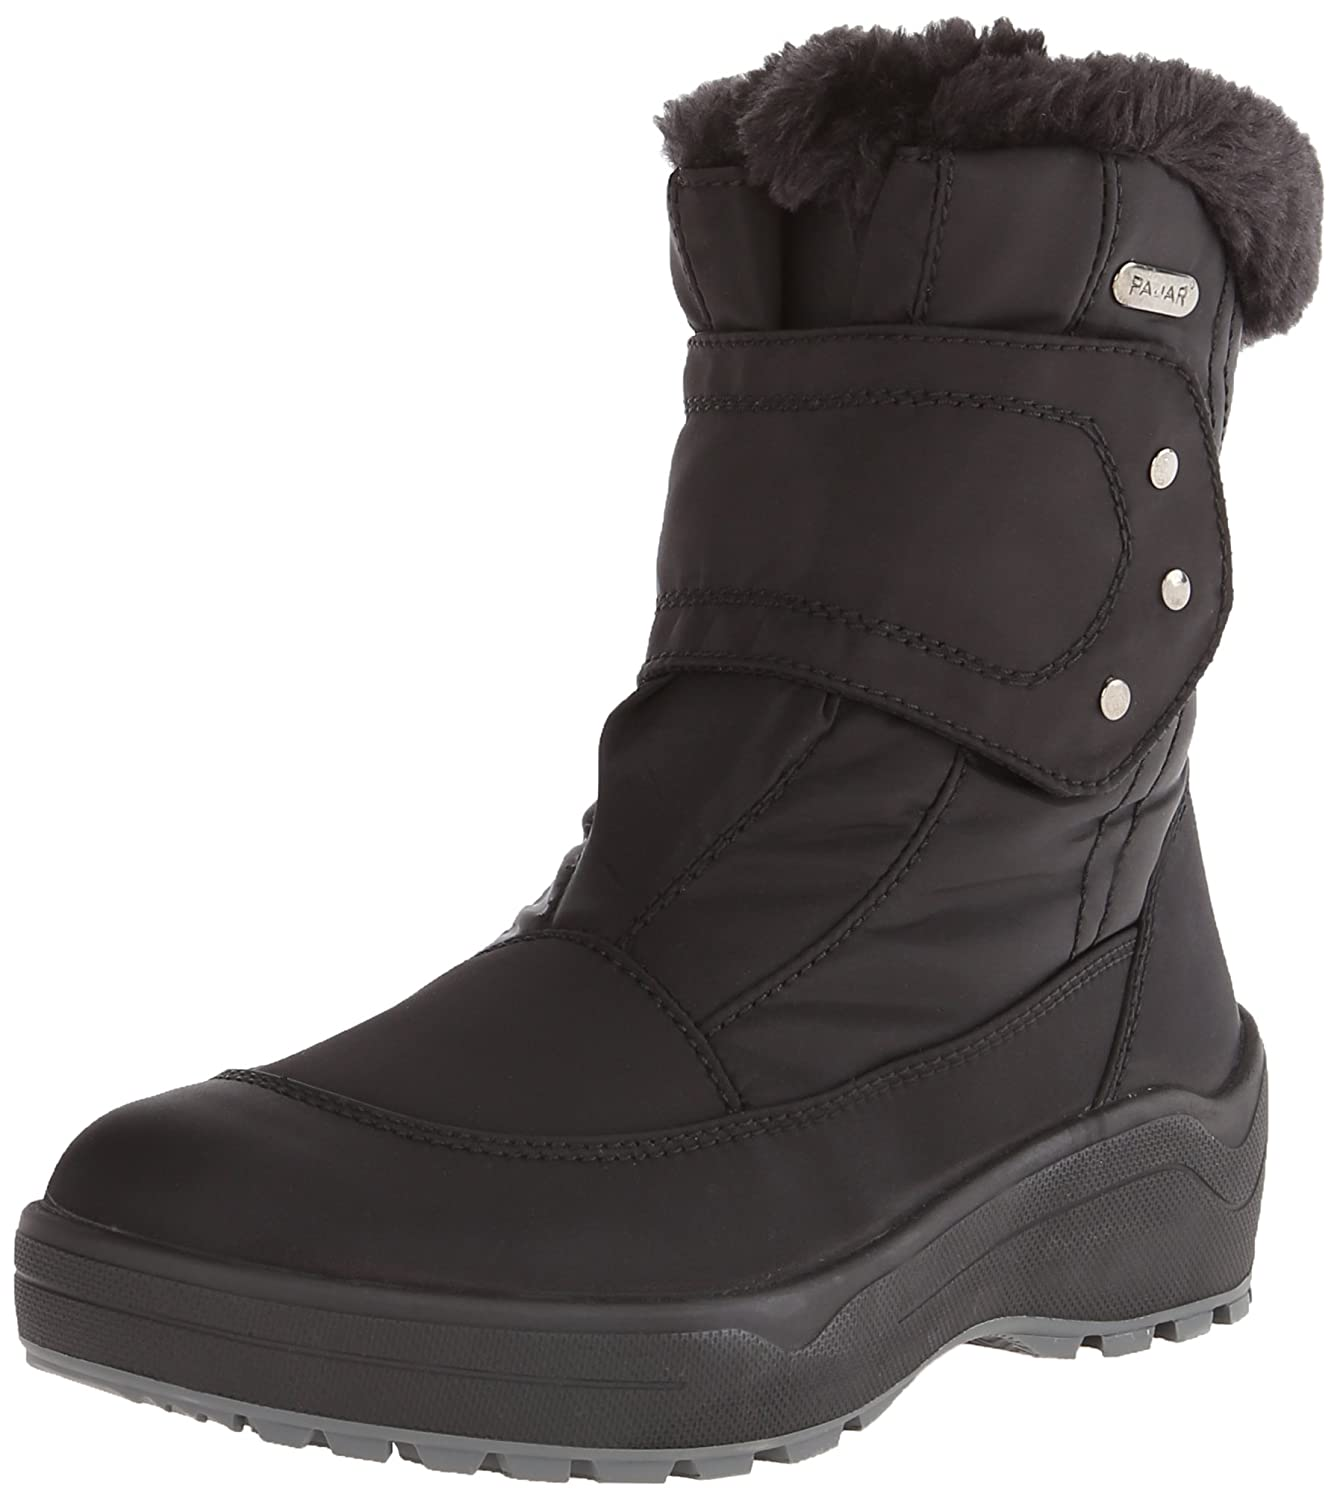 Pajar Women's Moscou-3 Boot B00N07YSYO 39 EU/8-8.5 M US|Black